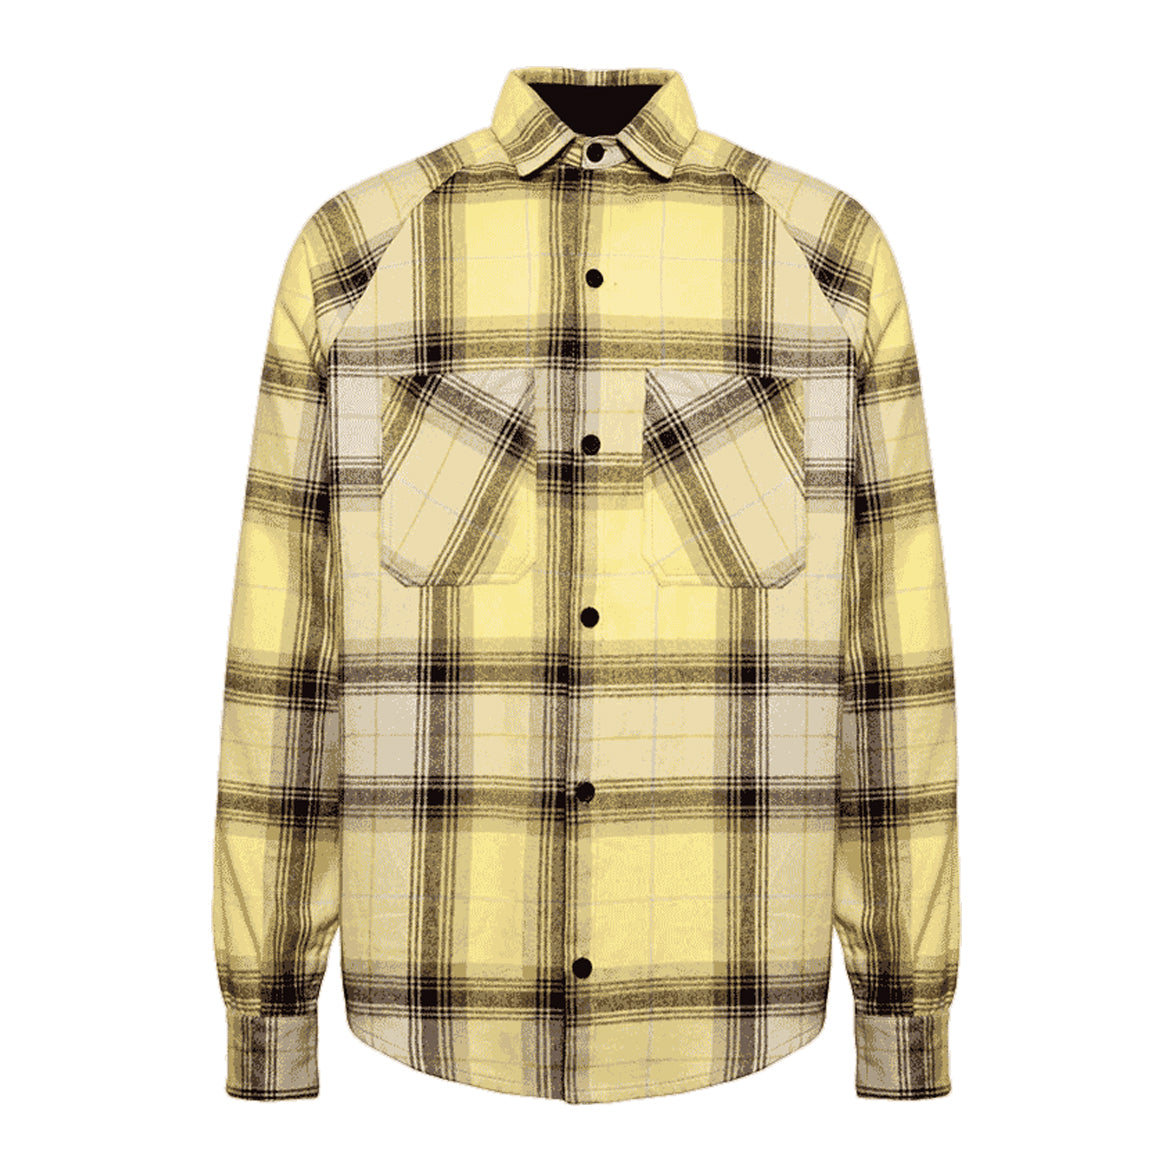 FLANNEL SHIRT - YELLOW